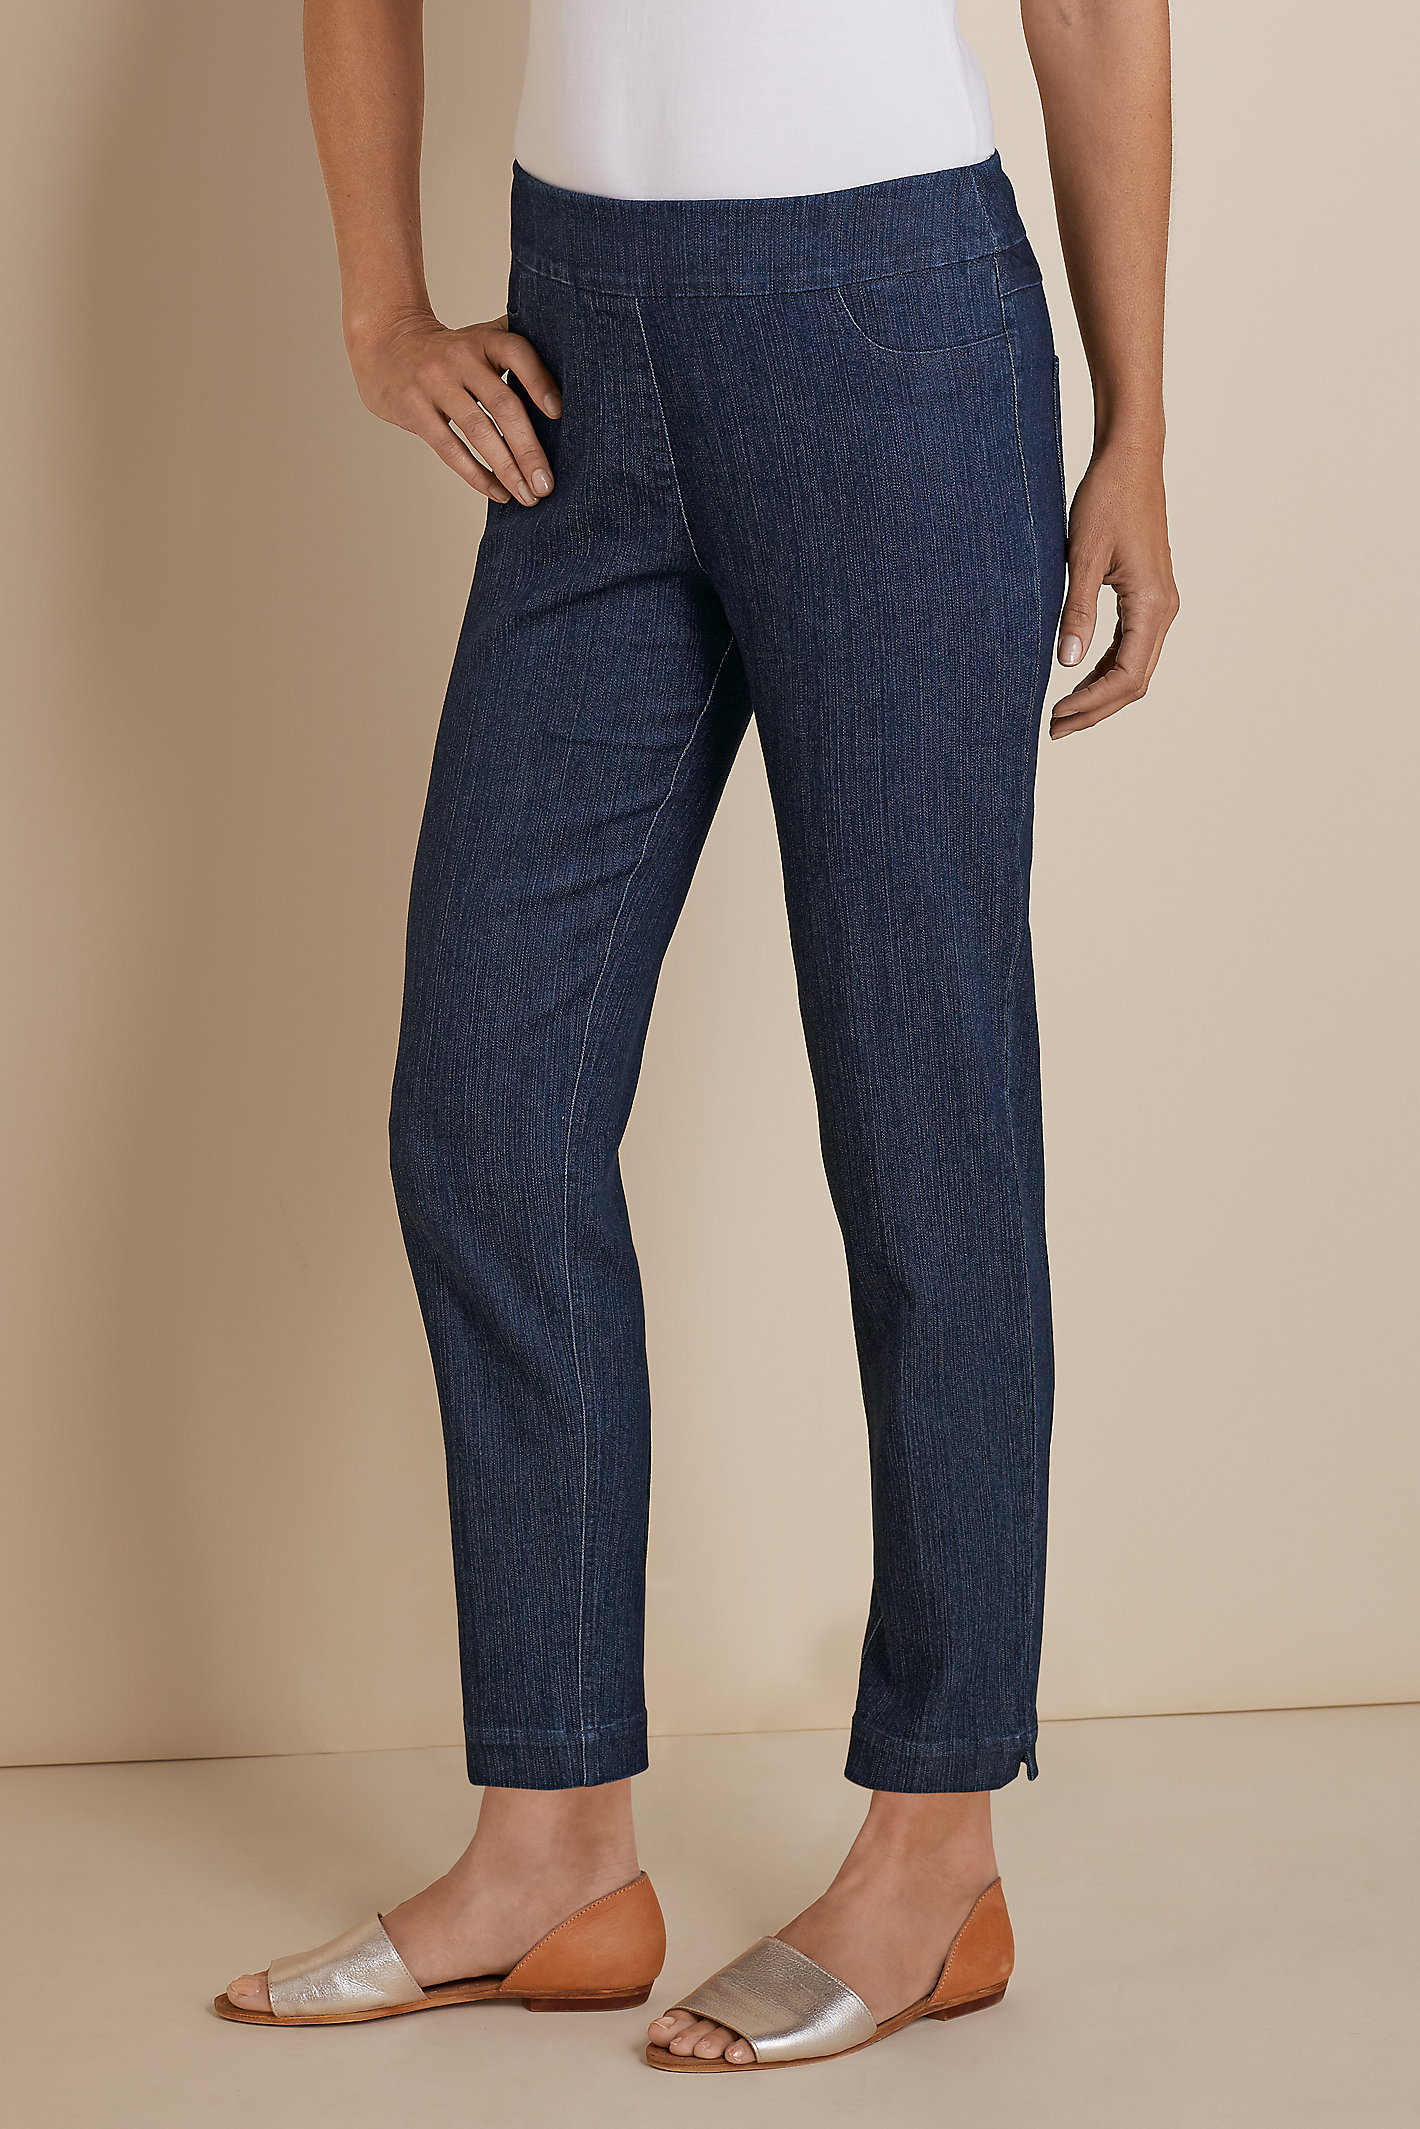 TL SUPER STRETCH ANKLE PANTS